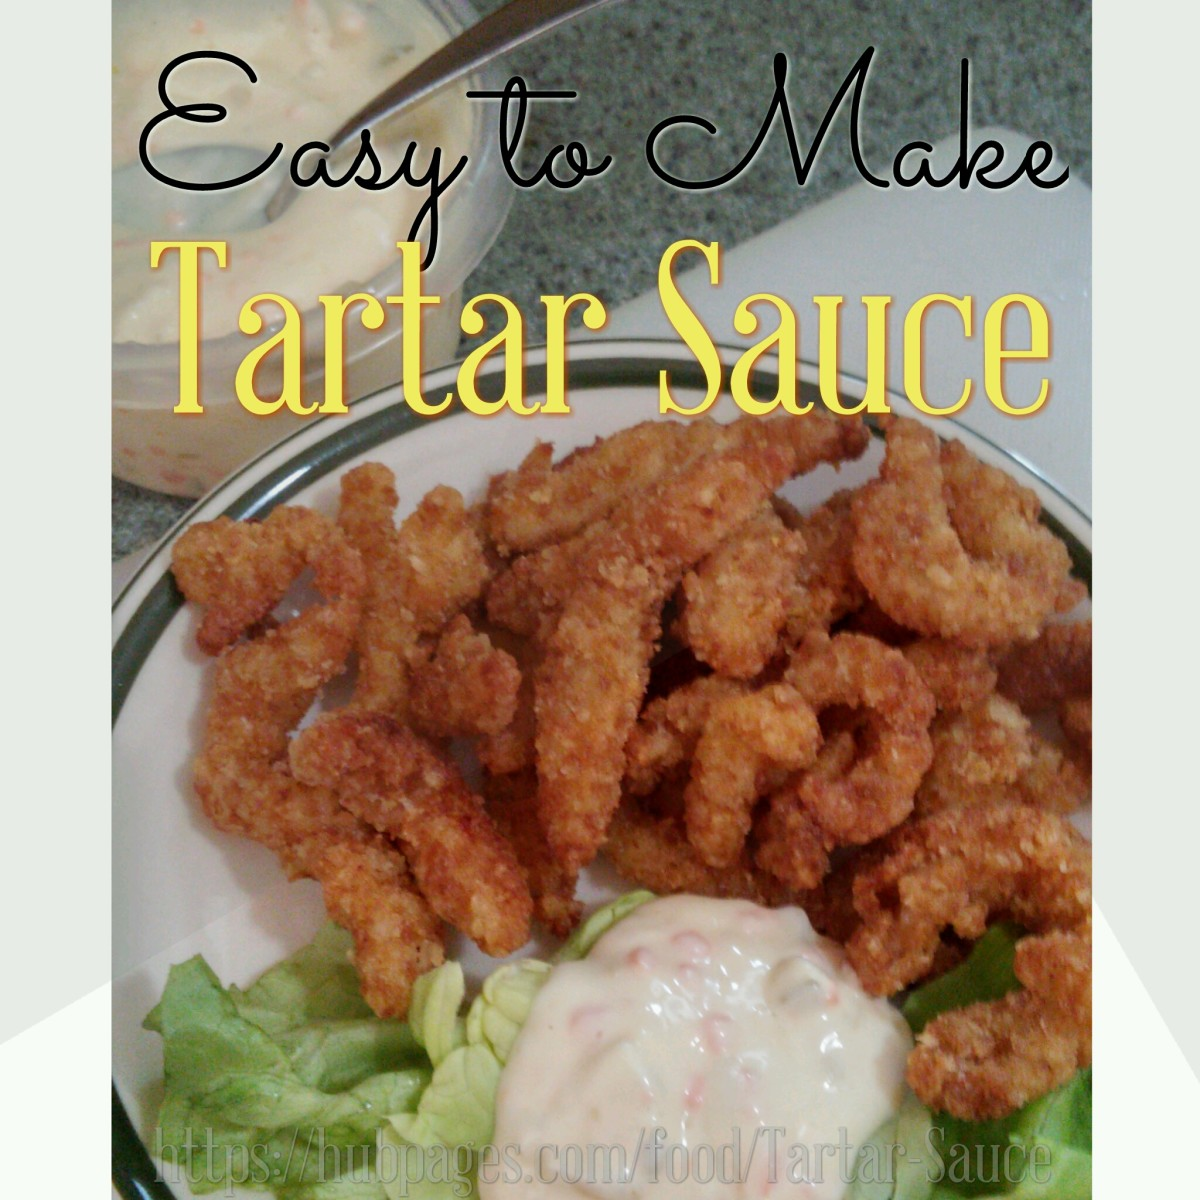 This Tartar Sauce Recipe blends the perfect Ying and Yang balance of the Vinegar sourness of Dill Pickle and Mayo against the equalizing sweetness of Sugar and Carrots.